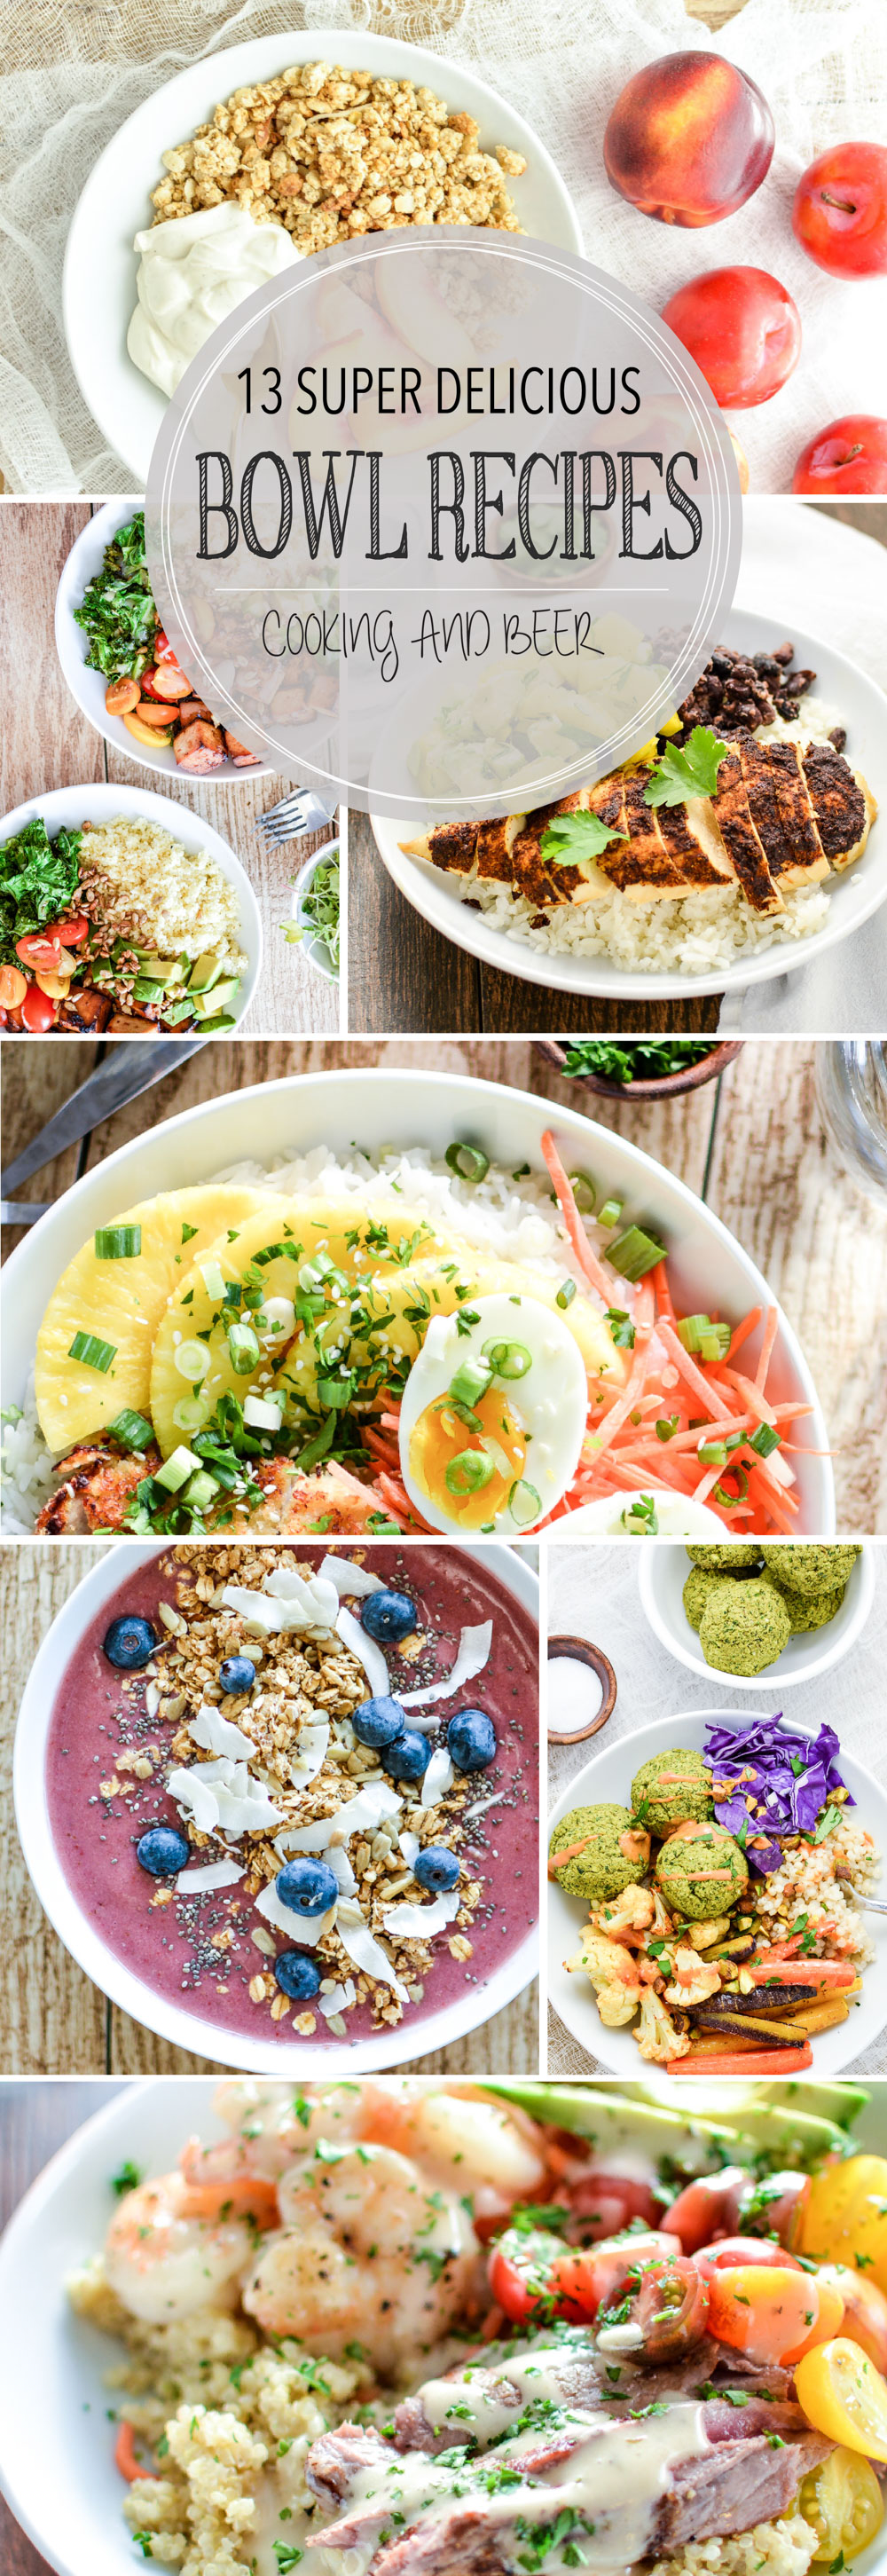 From smoothie bowls to rice bowls, here are 13 super delicious bowl recipes perfect for breakfast, lunch or dinner!